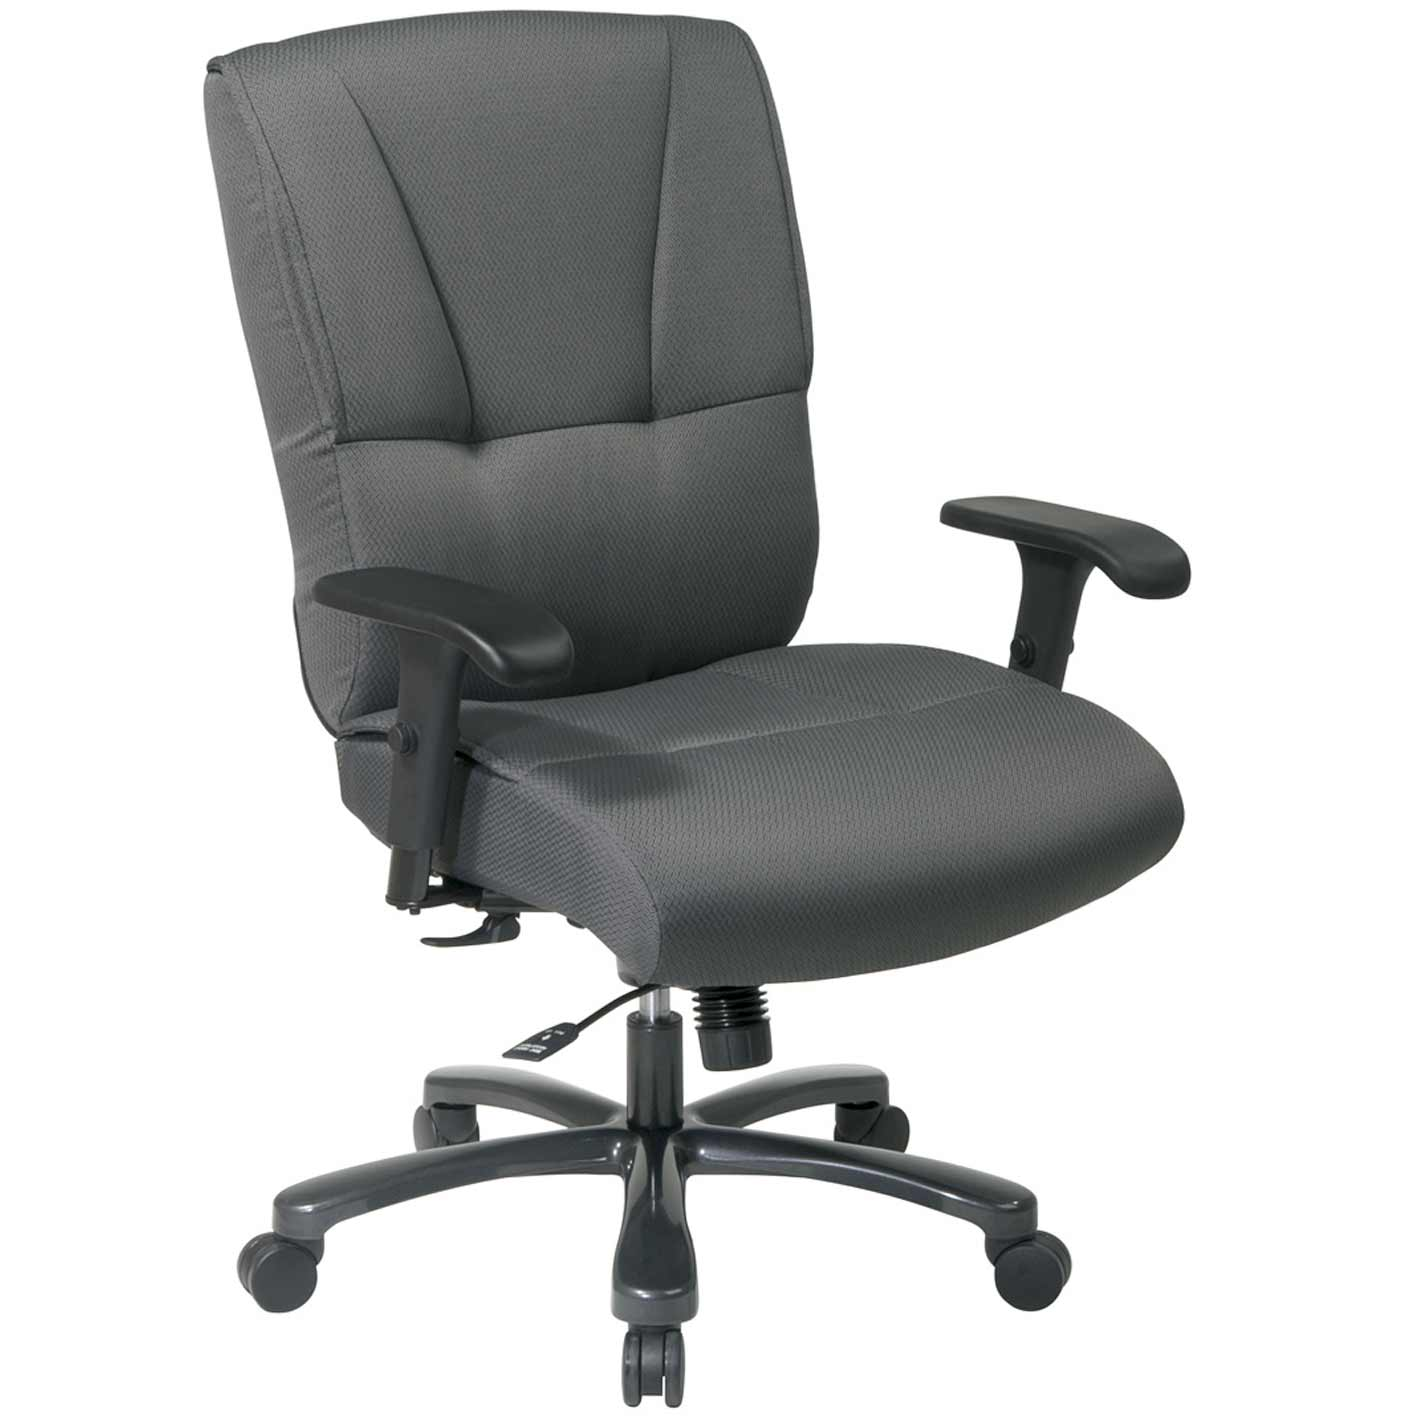 Discount Executive Big and Tall Office Chair from Office Star